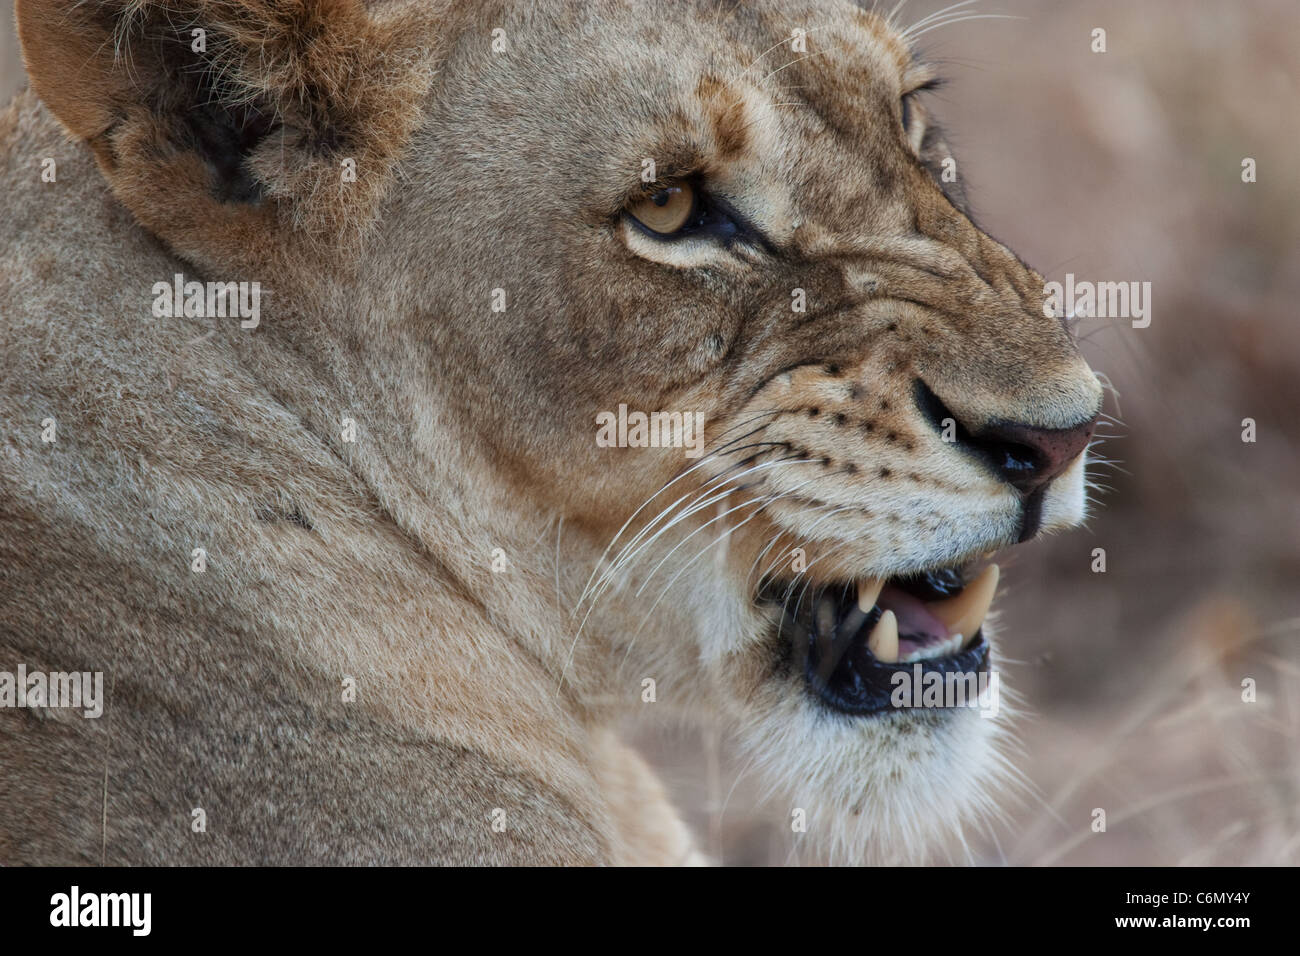 Snarling lioness close-up - Stock Image